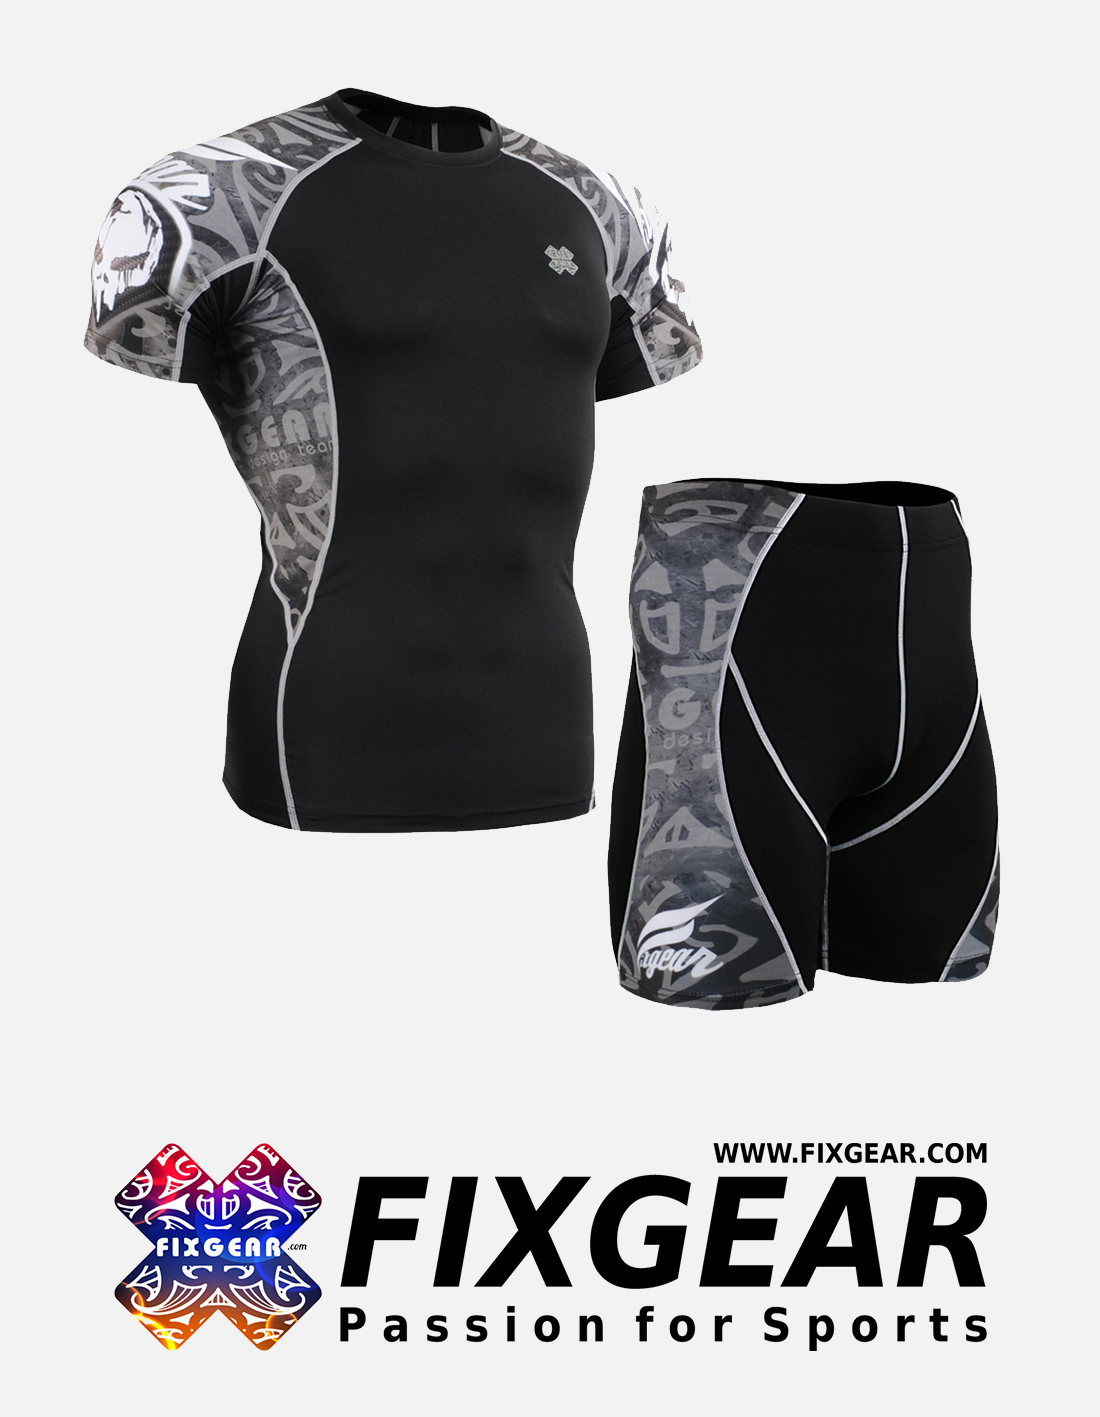 FIXGEAR C2S-P2S-B43 Set Compression Base Layer Shirt & Compression Drawer Shorts